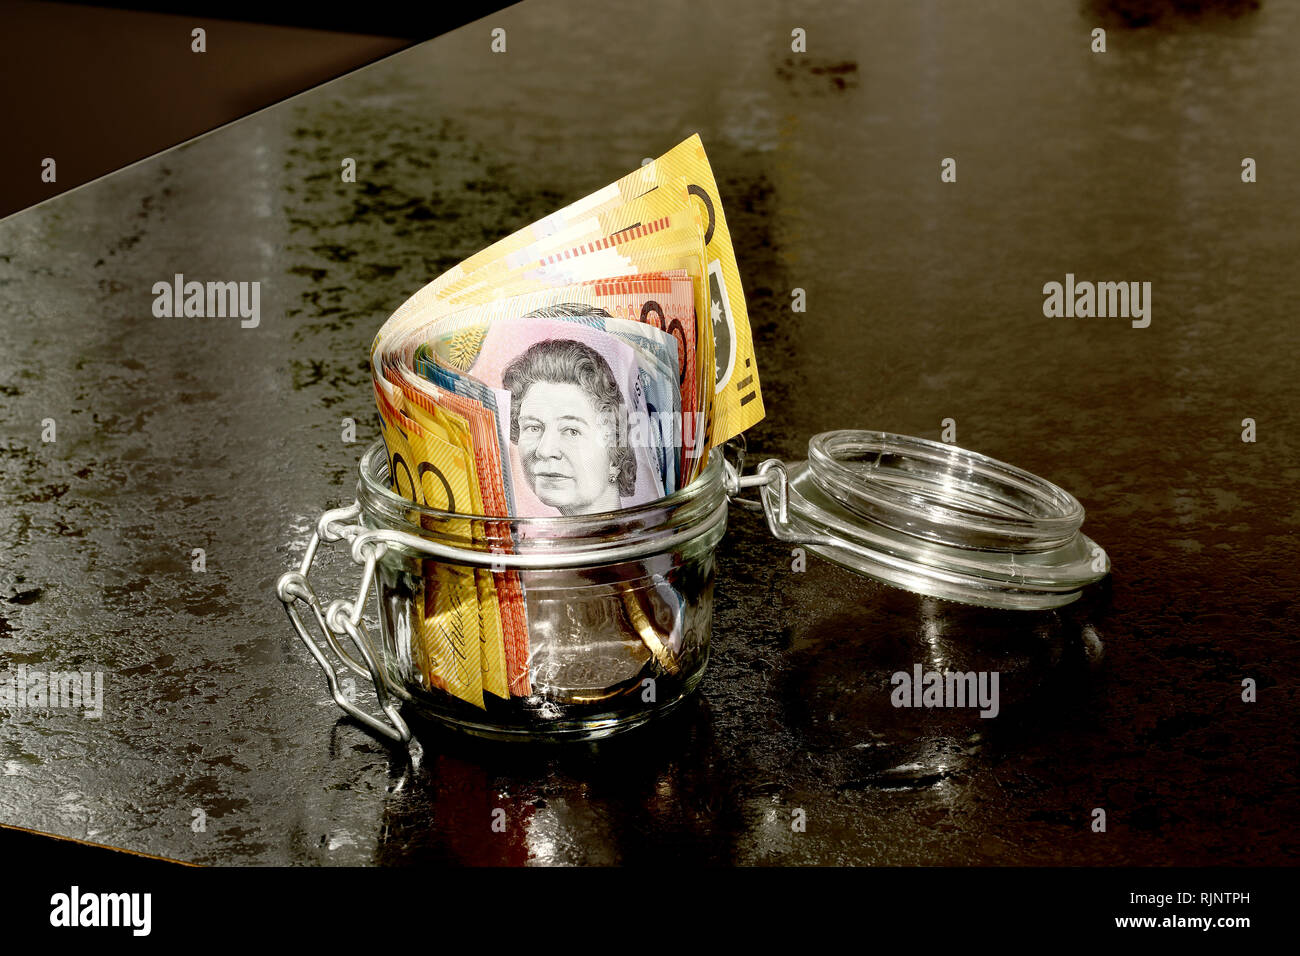 Australian Dollars in a glass jar on a kitchen counter Stock Photo